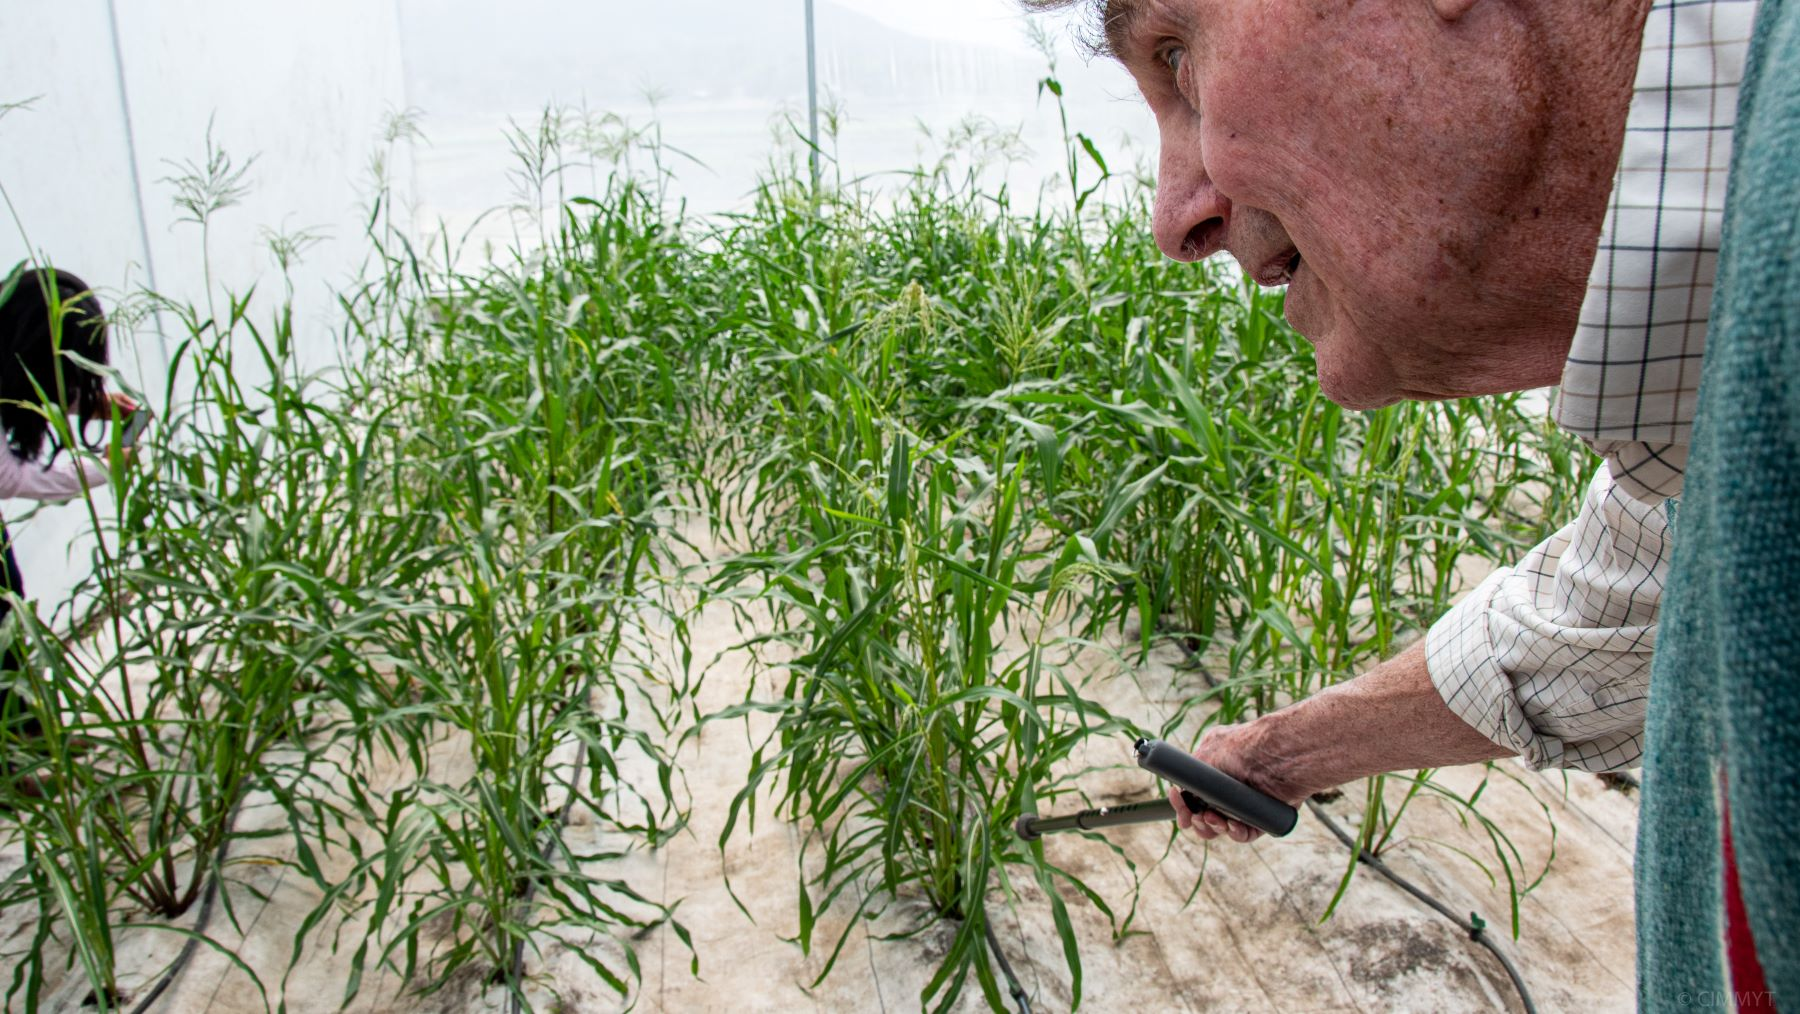 Garrison Wilkes describes characteristic features of the teosinte grown in the greenhouse. (Photo: Alfonso Cortés/CIMMYT)